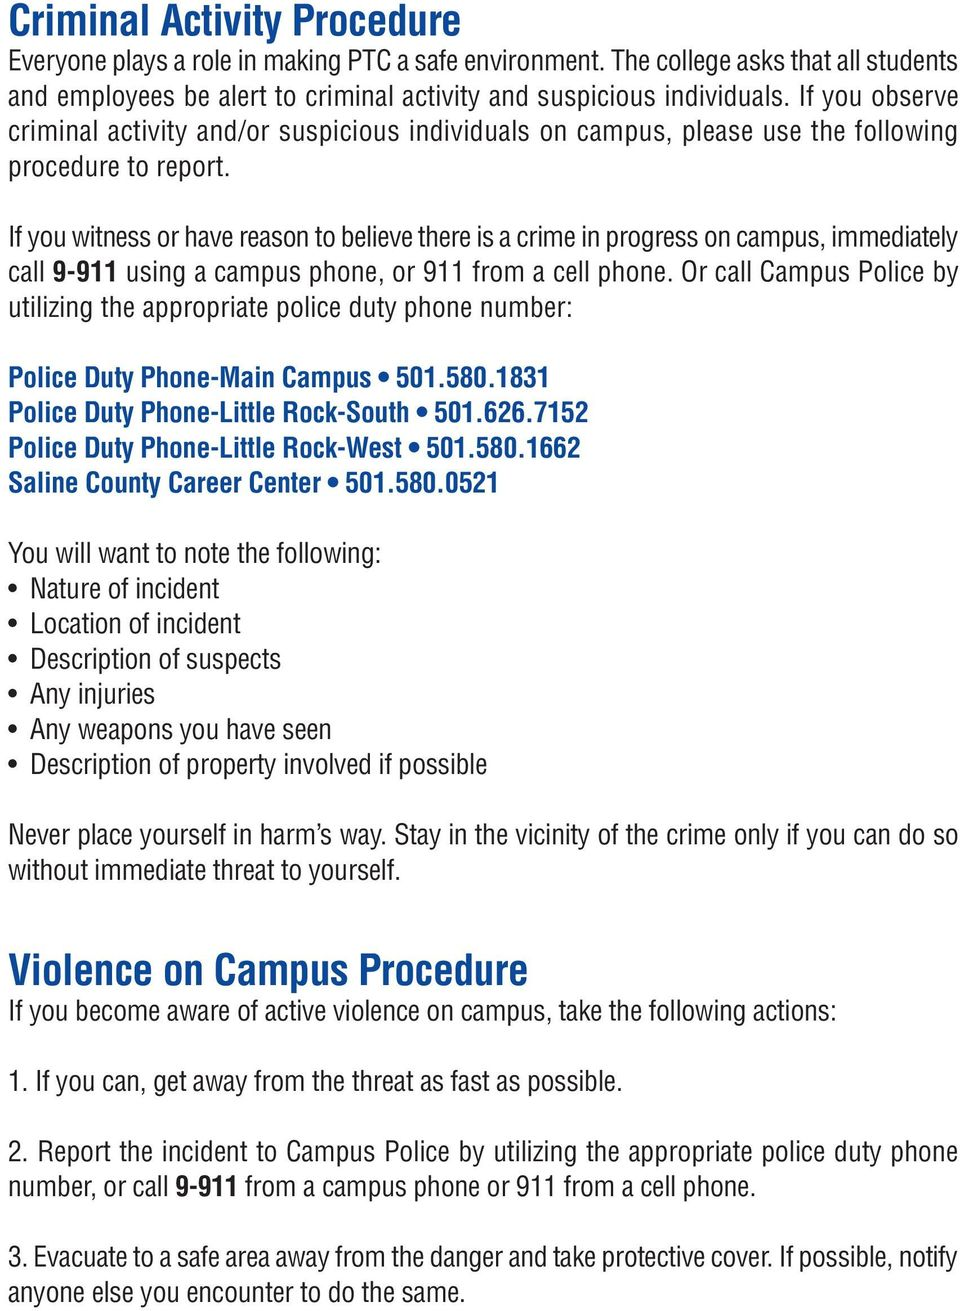 If you witness or have reason to believe there is a crime in progress on campus, immediately call 9-911 using a campus phone, or 911 from a cell phone.